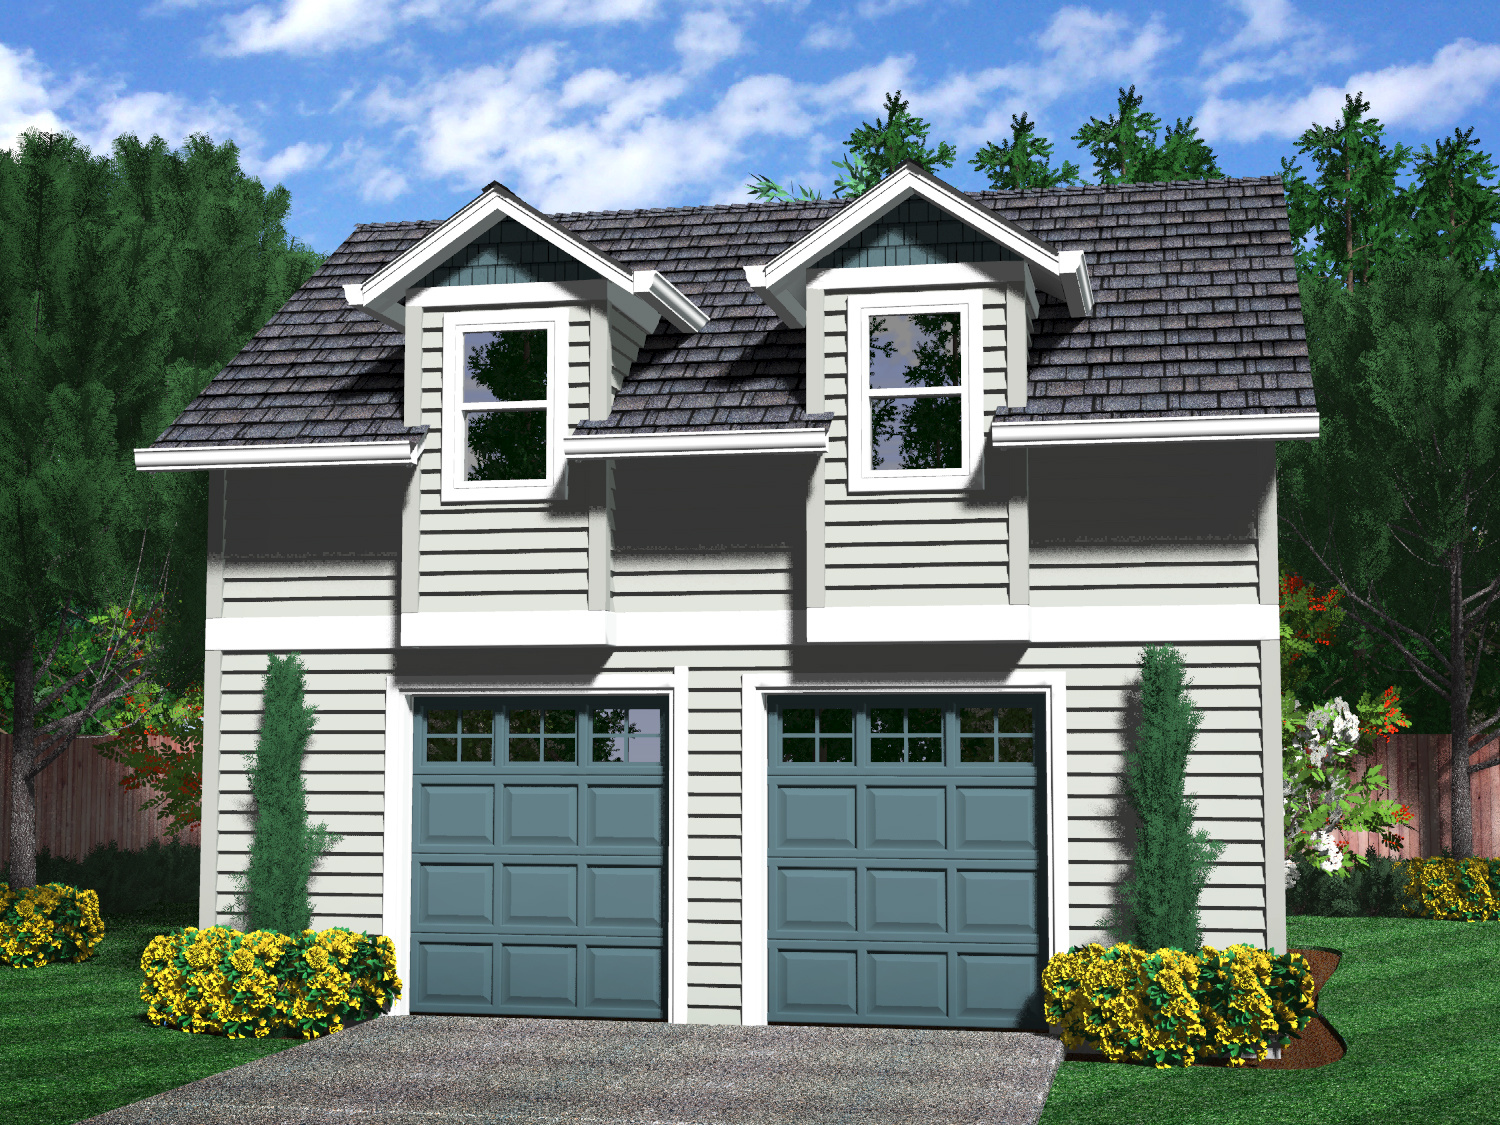 Detached garages for Detached garage with bonus room plans